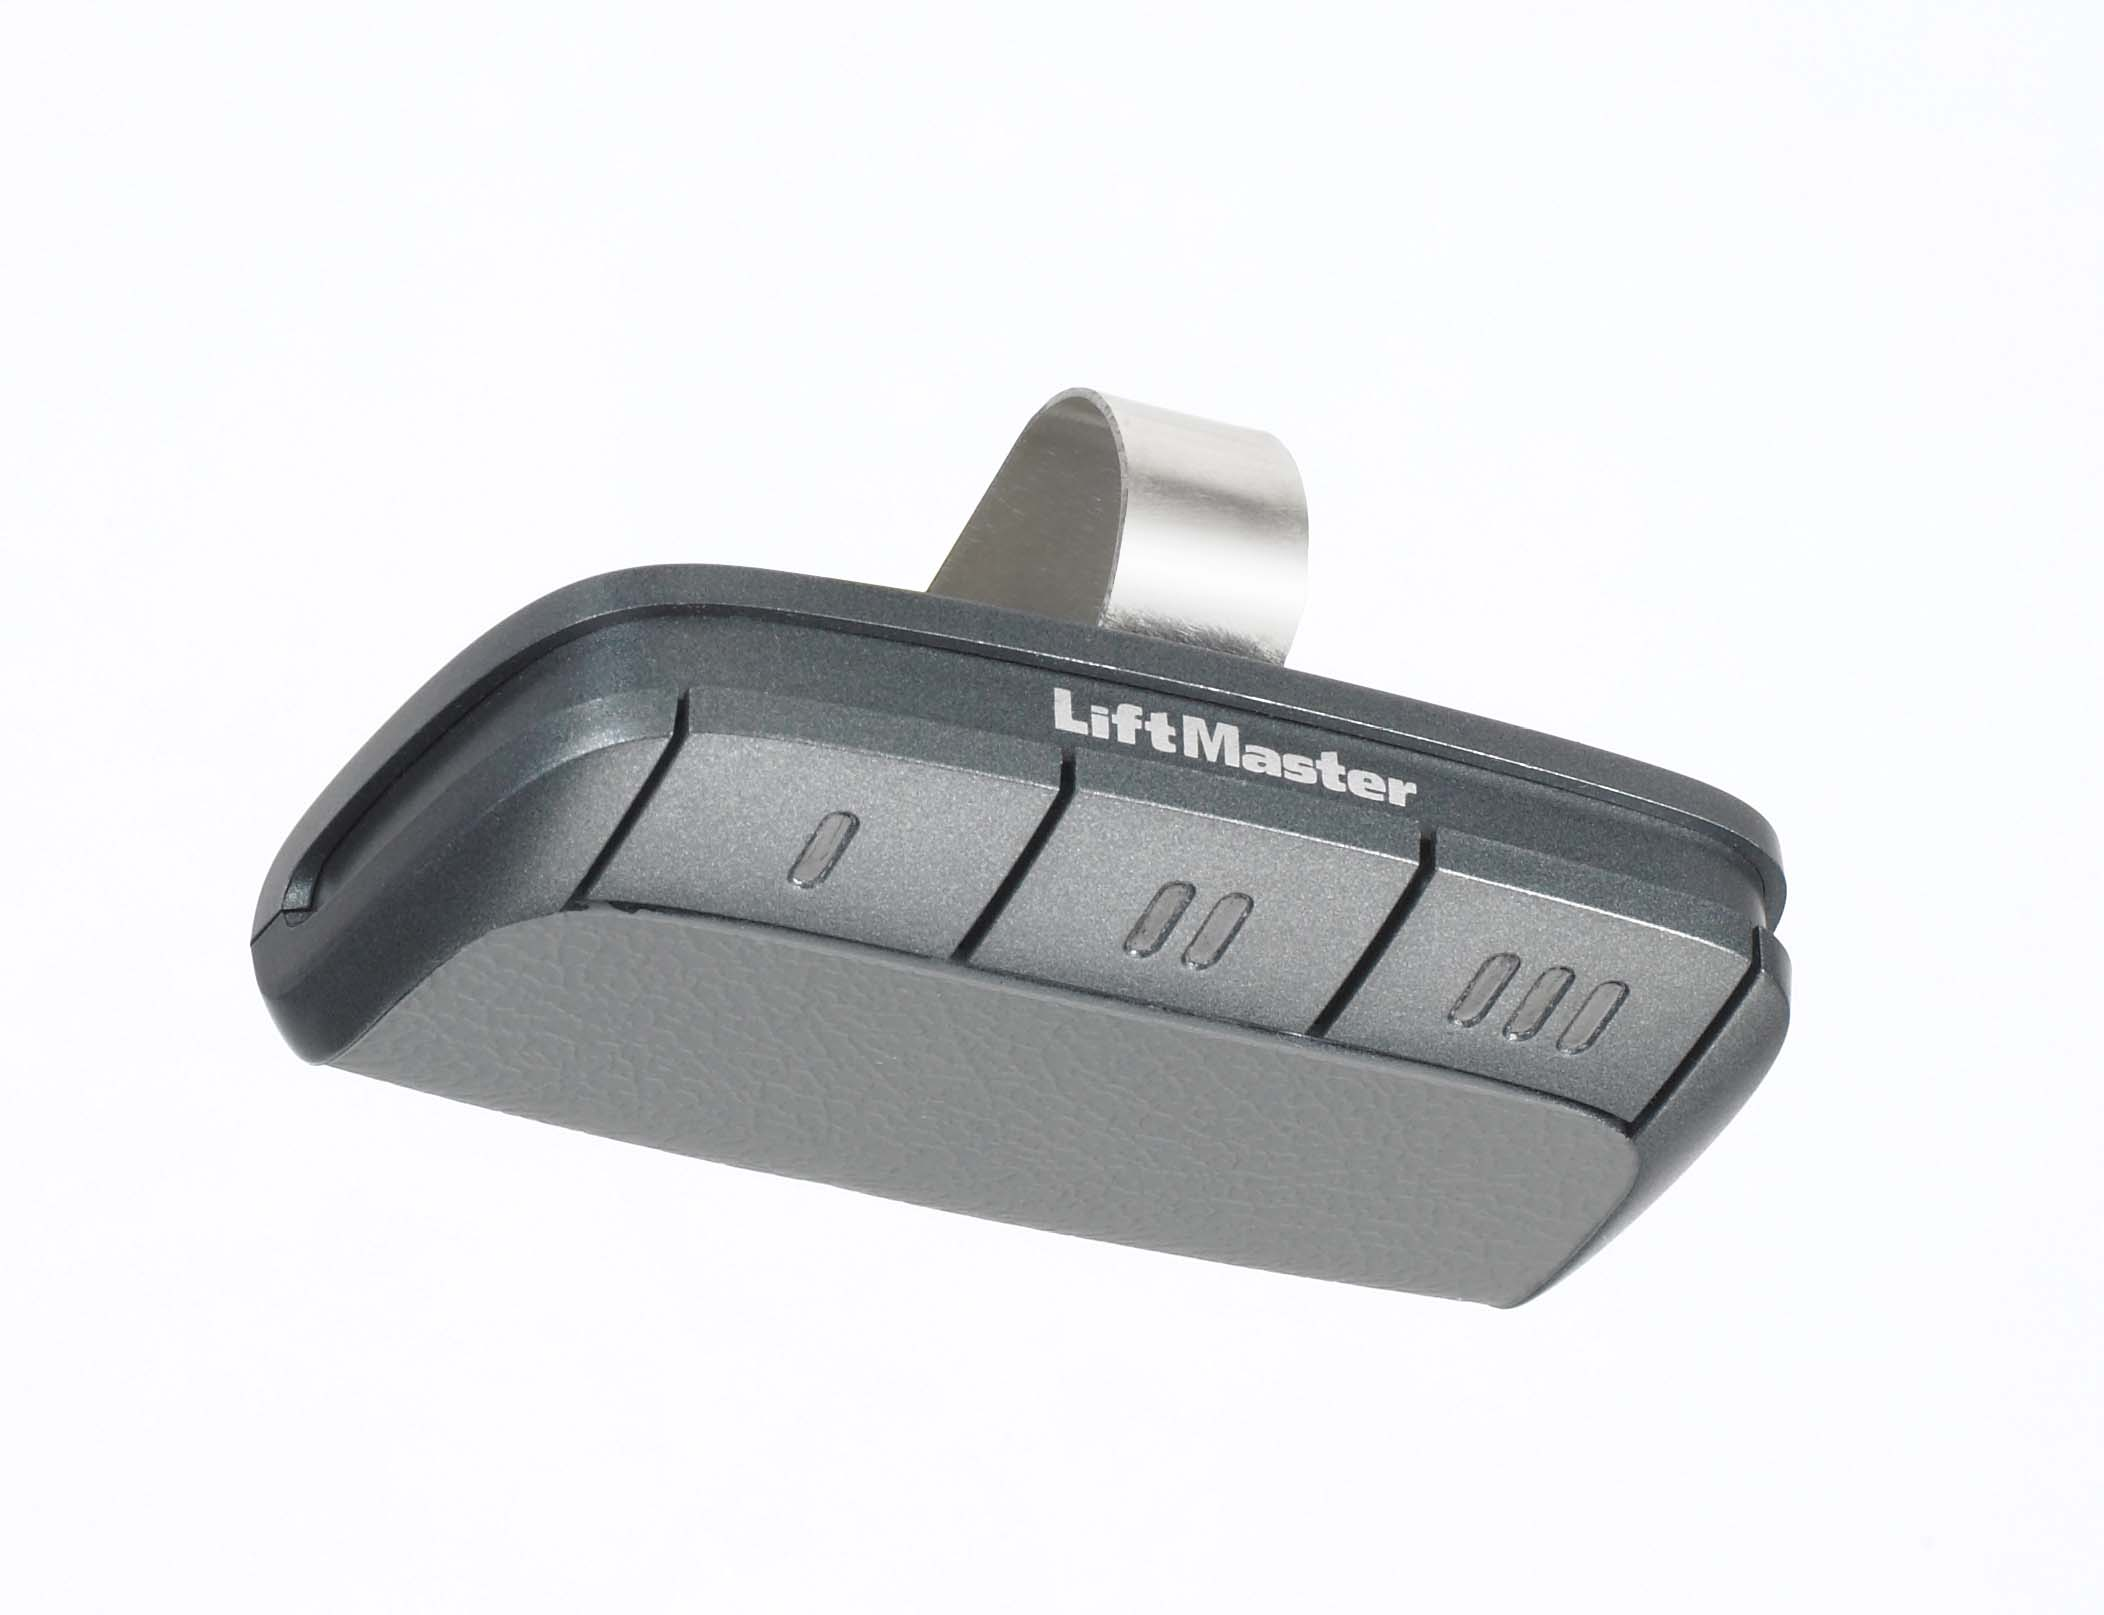 wall an liftmaster wireless myq security garage want doors function control those panel multi smart designed who opener in for extra door specifically